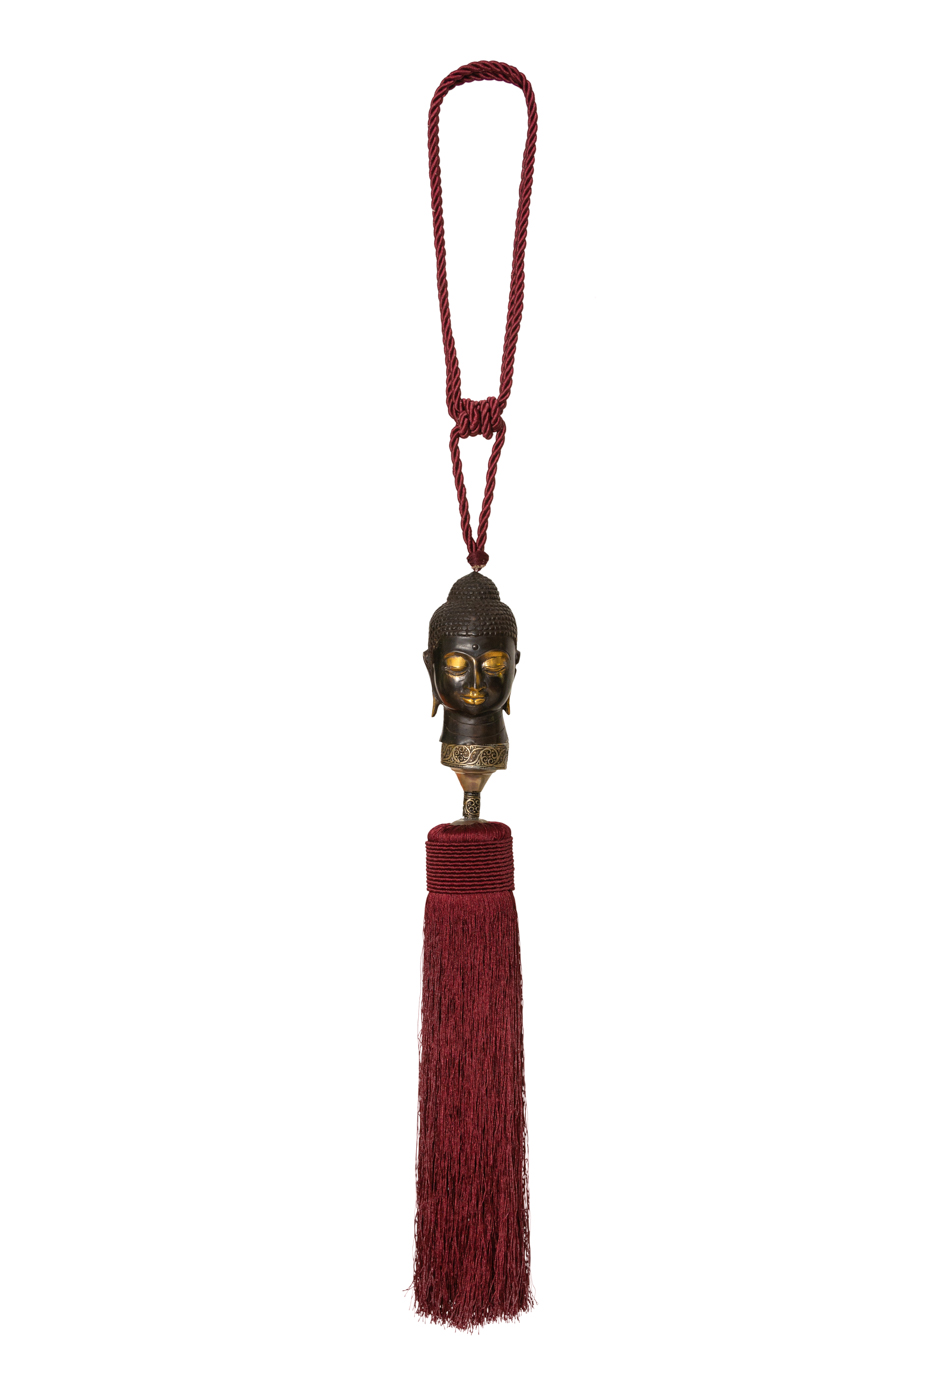 Moroccan tassels for curtains in silk threads and red wine Buddha's head.